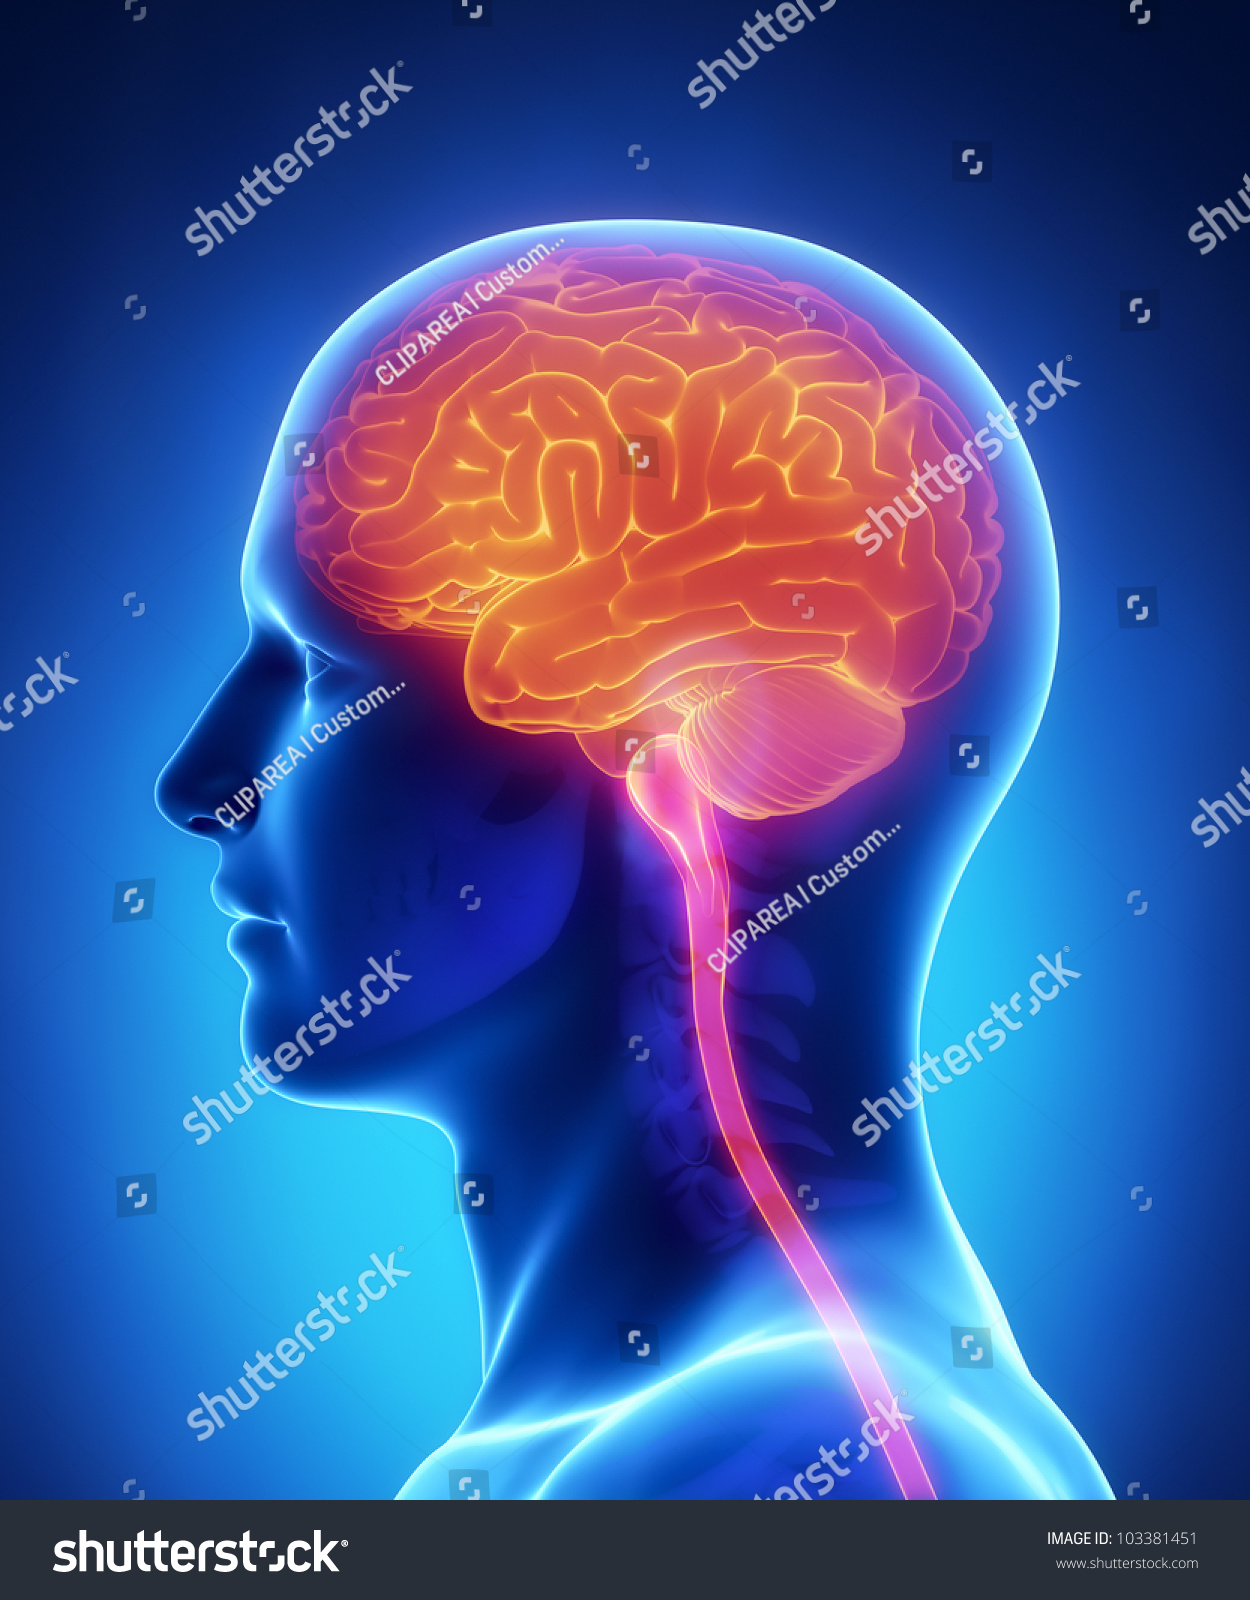 Brain Spinal Cord Anatomy Cross Section Stock Illustration 103381451 ...